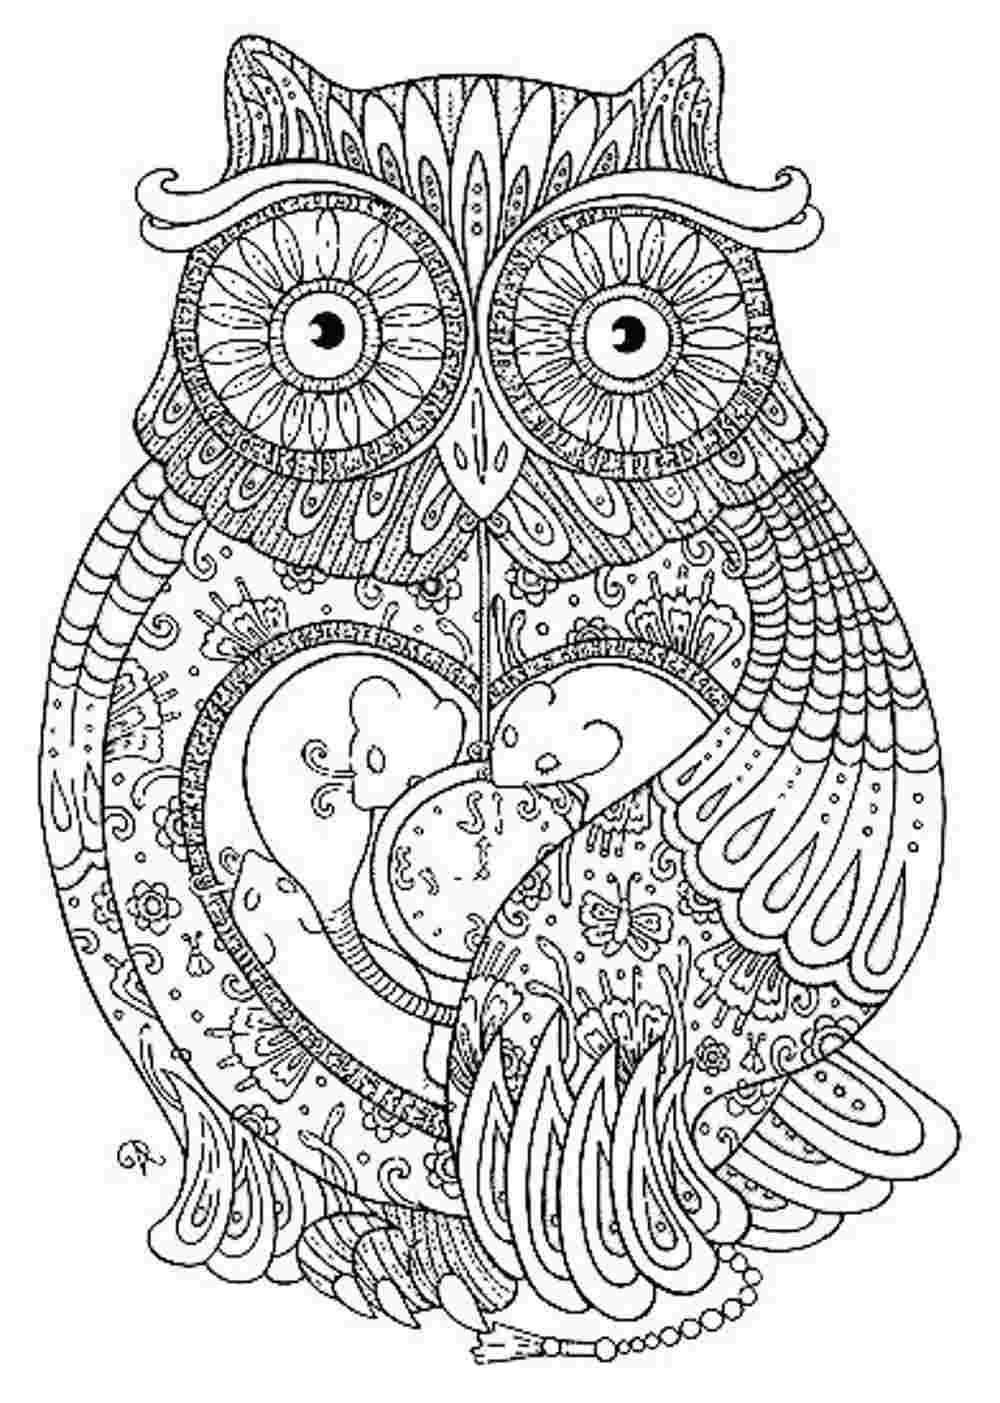 free printable pages grown up coloring pages to download and print for free pages printable free